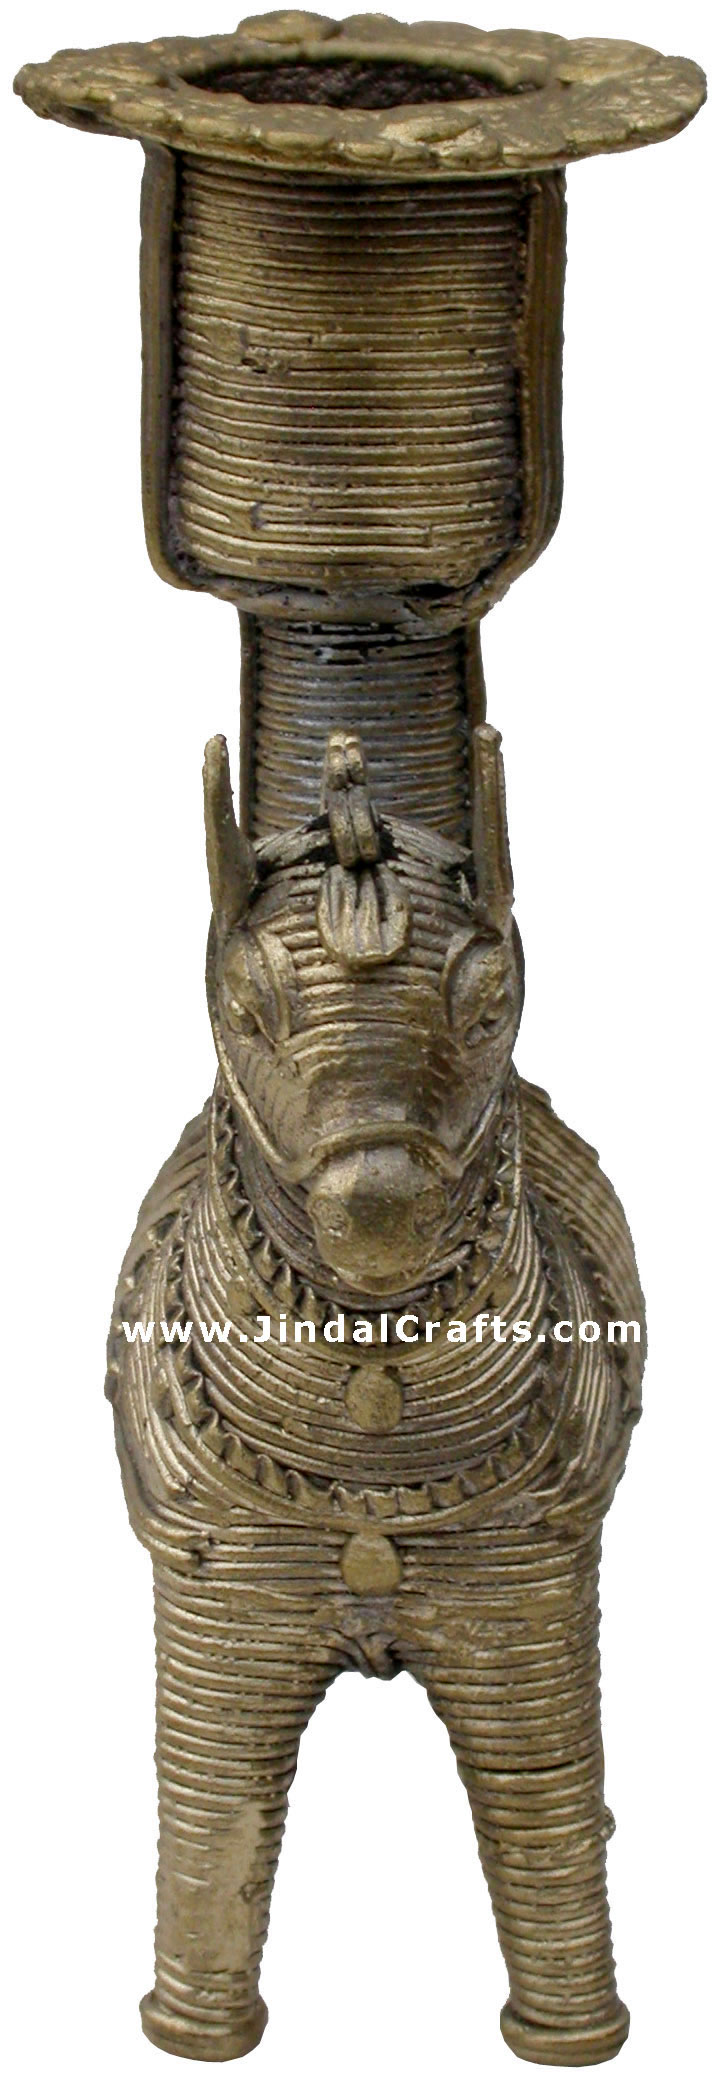 Dhokra Horse Candle Stand - Indian Tribal Art